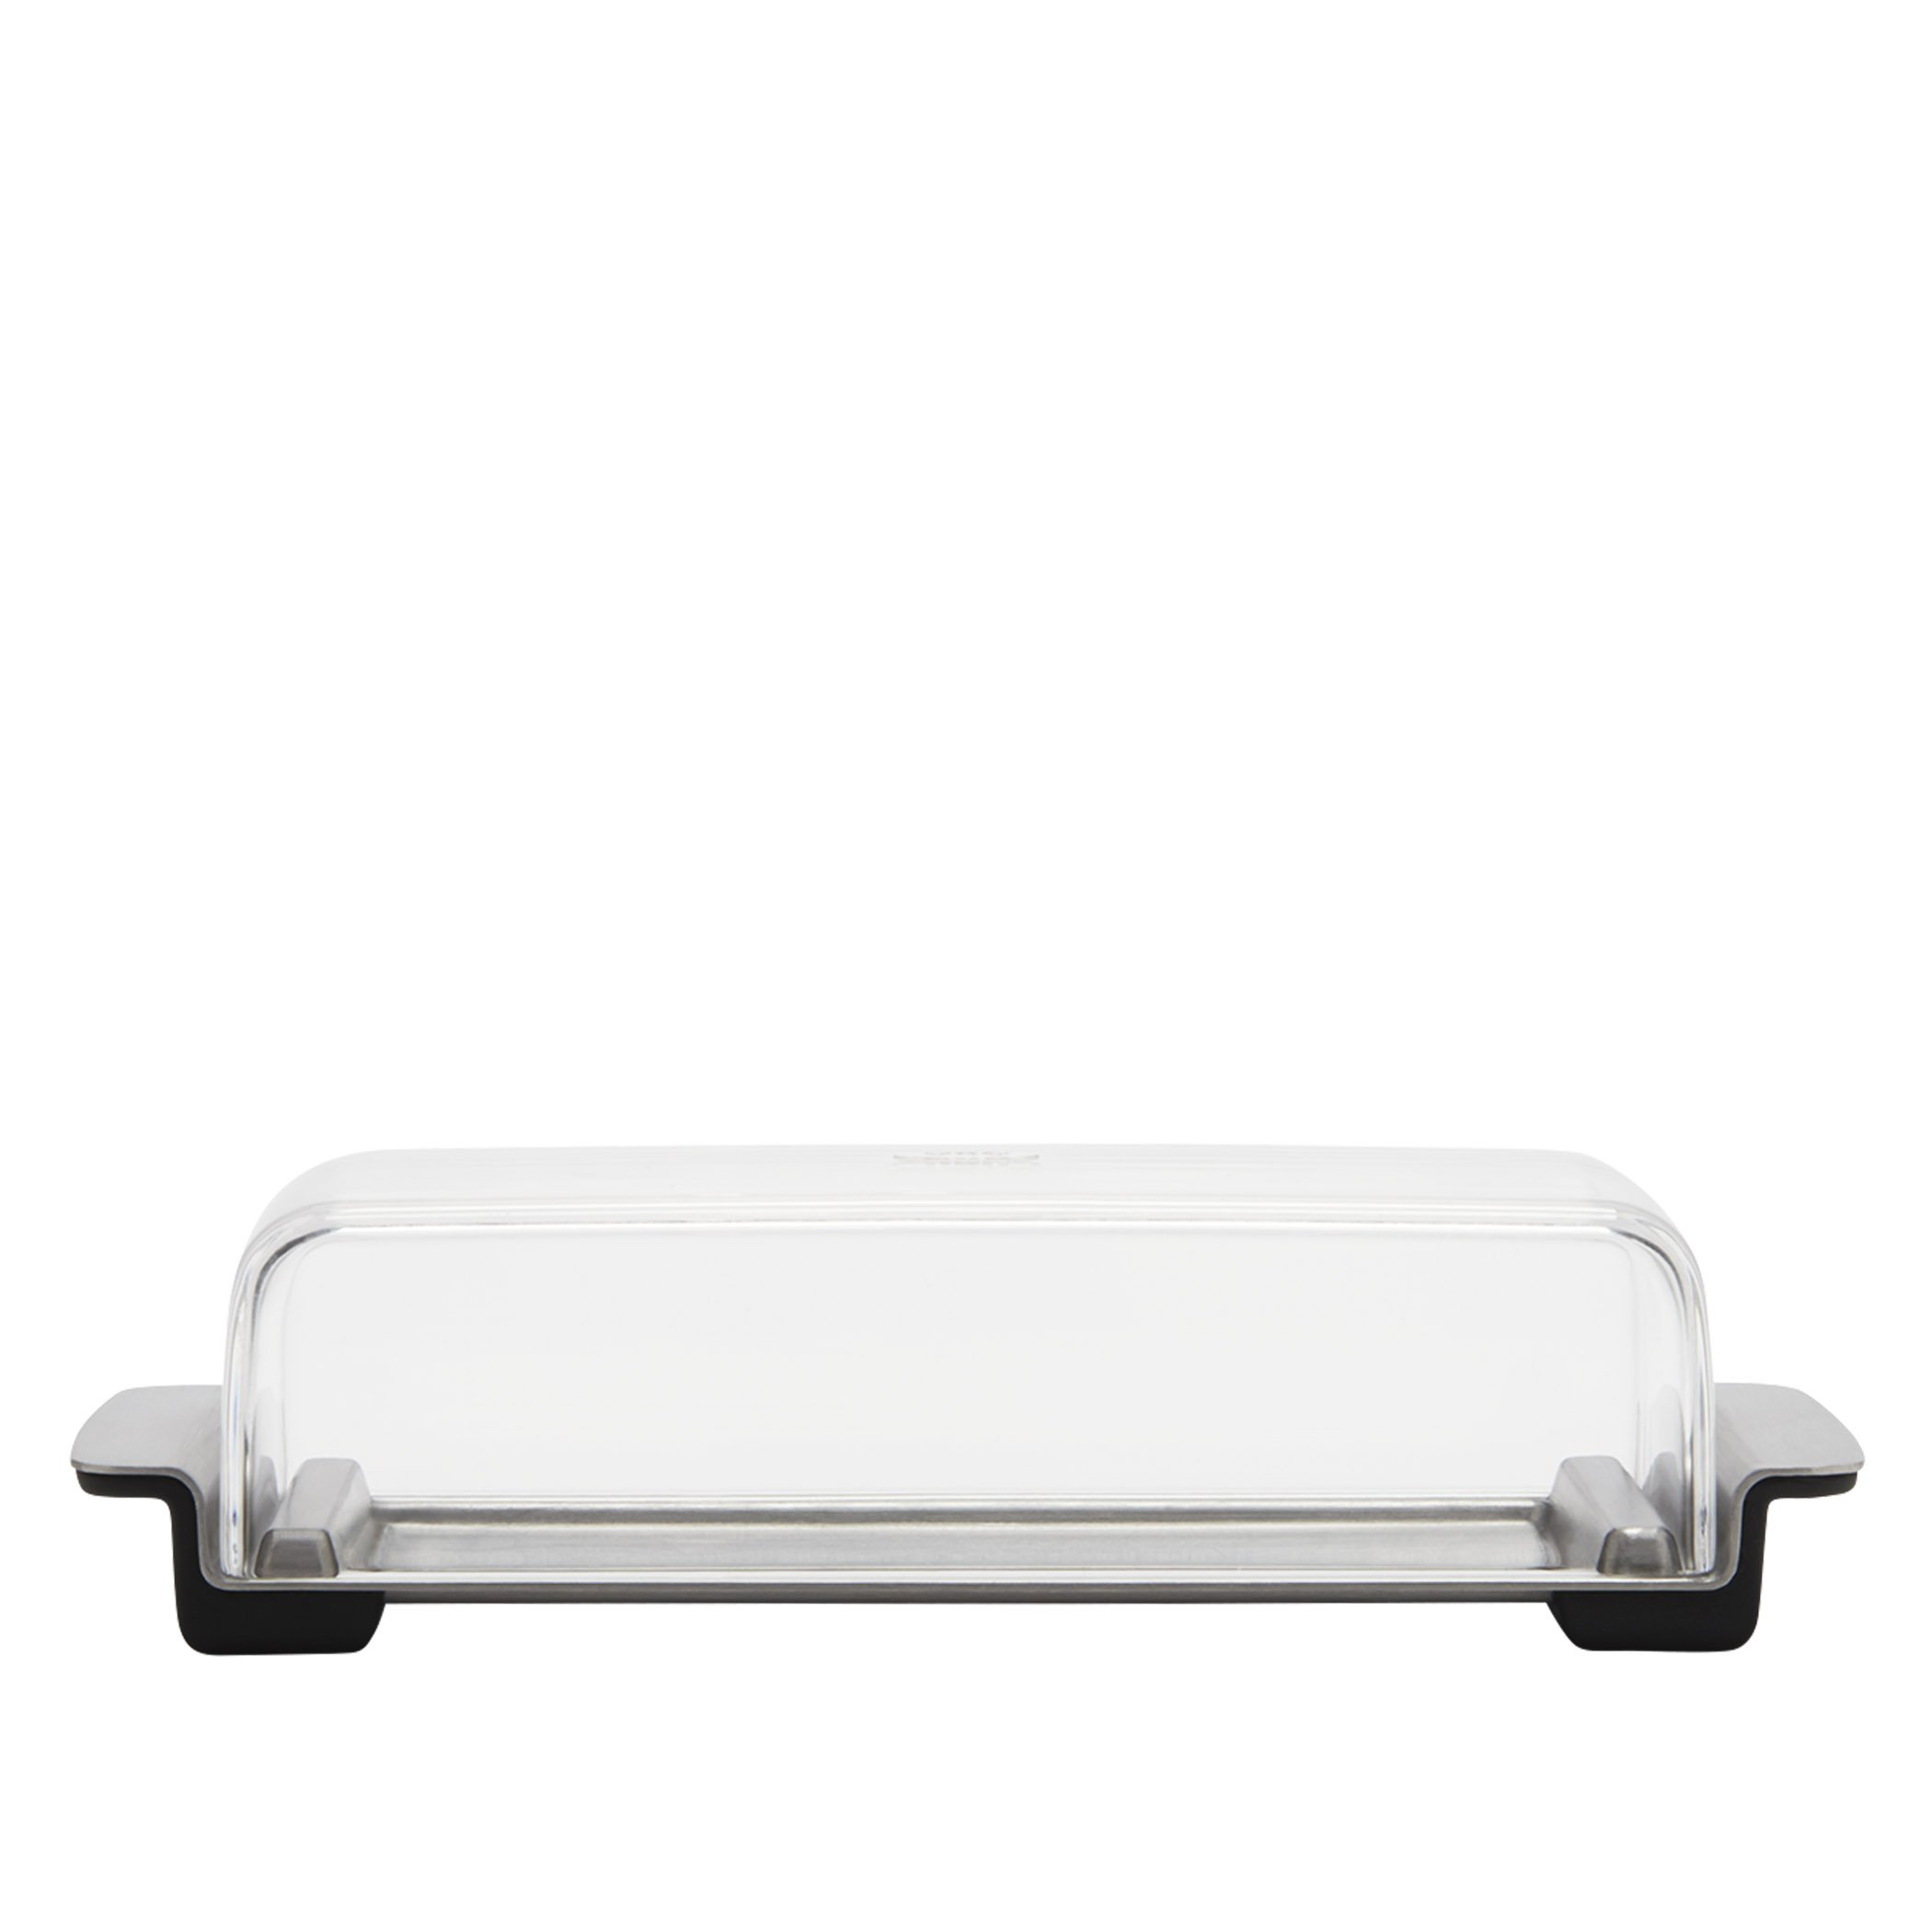 OXO Good Grips Butter Dish, Stainless Steel/Clear